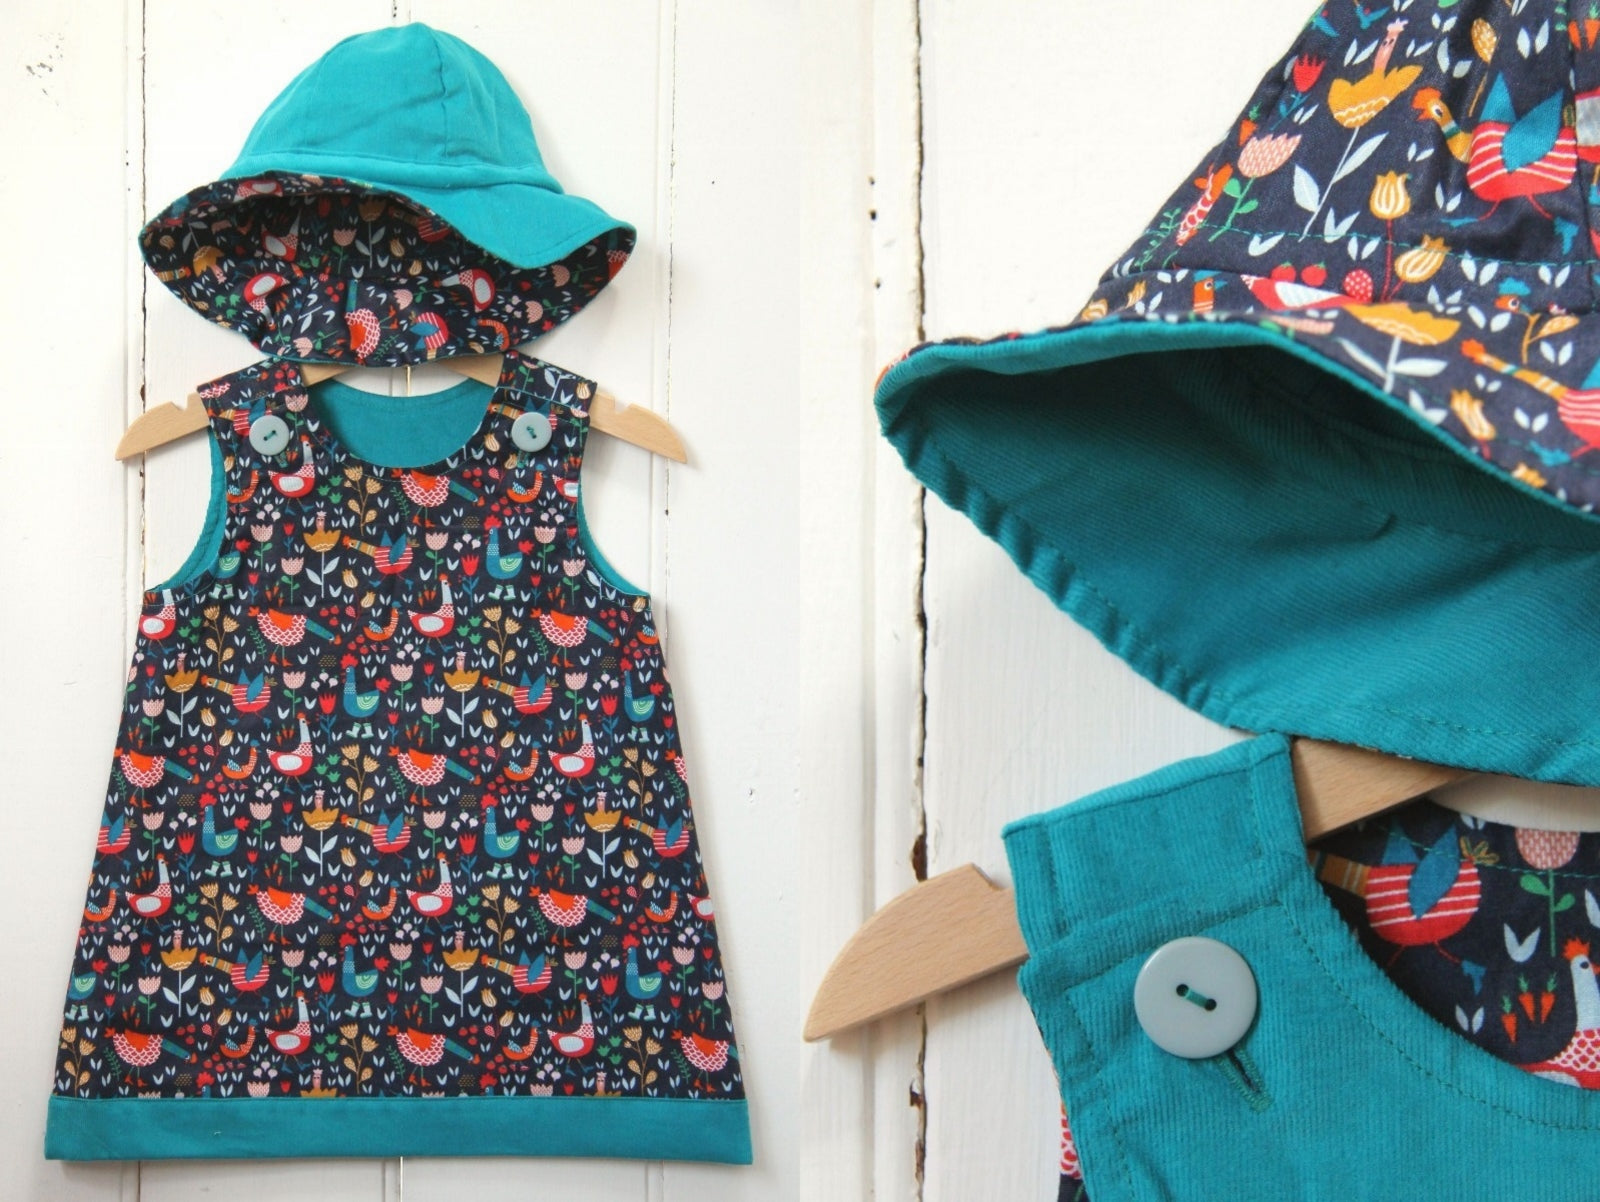 Turquoise Chickens Needlecord Hat - Hat - Bobbi Handmade Children's Clothes